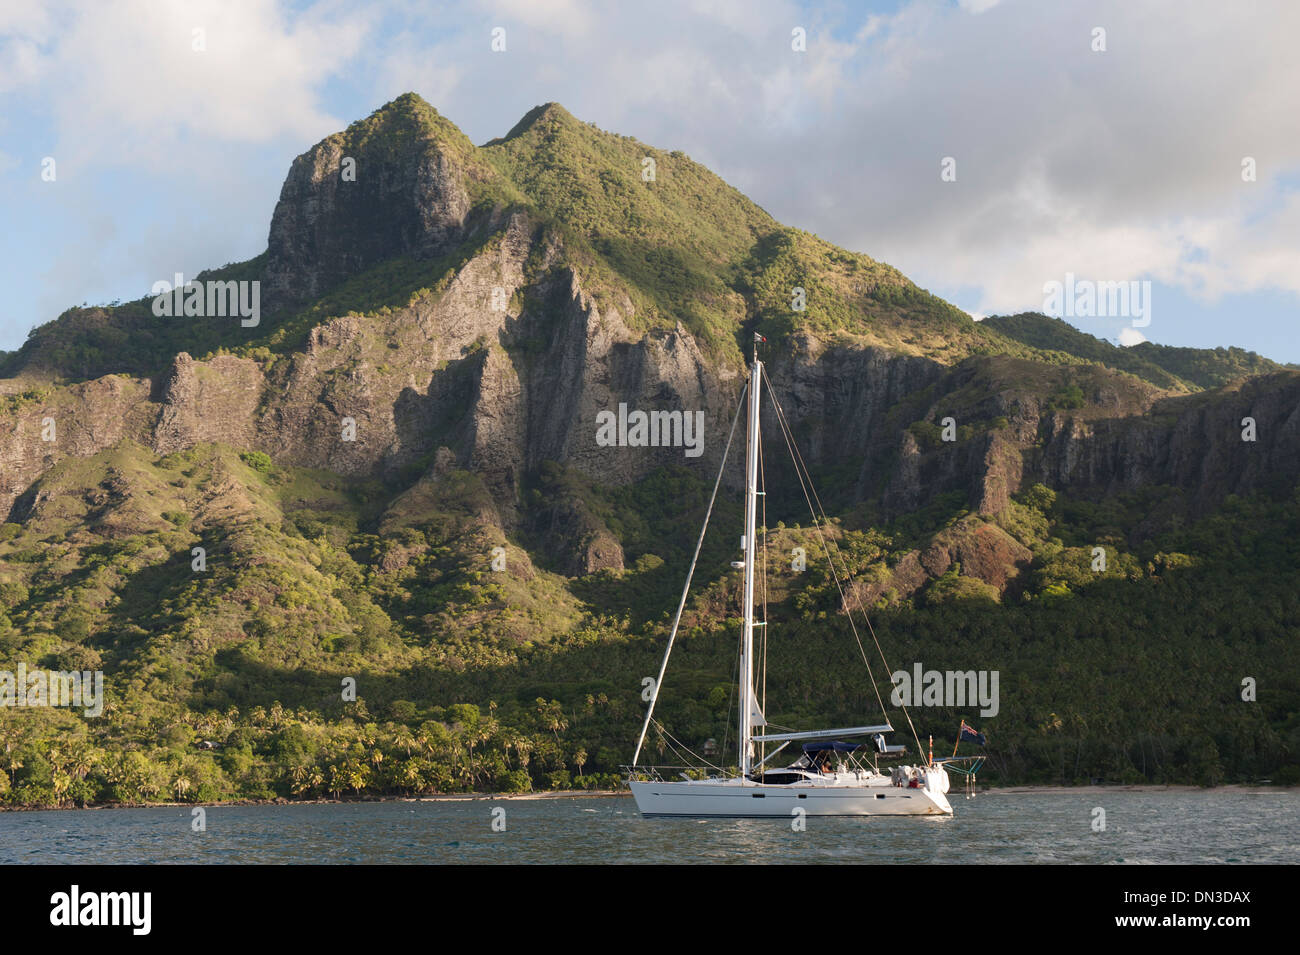 A blue water cruising yacht at anchor in Baie d'Anaho (Anaho Bay), north east Nuku Hiva, Marquesasa, French Polynesia - Stock Image